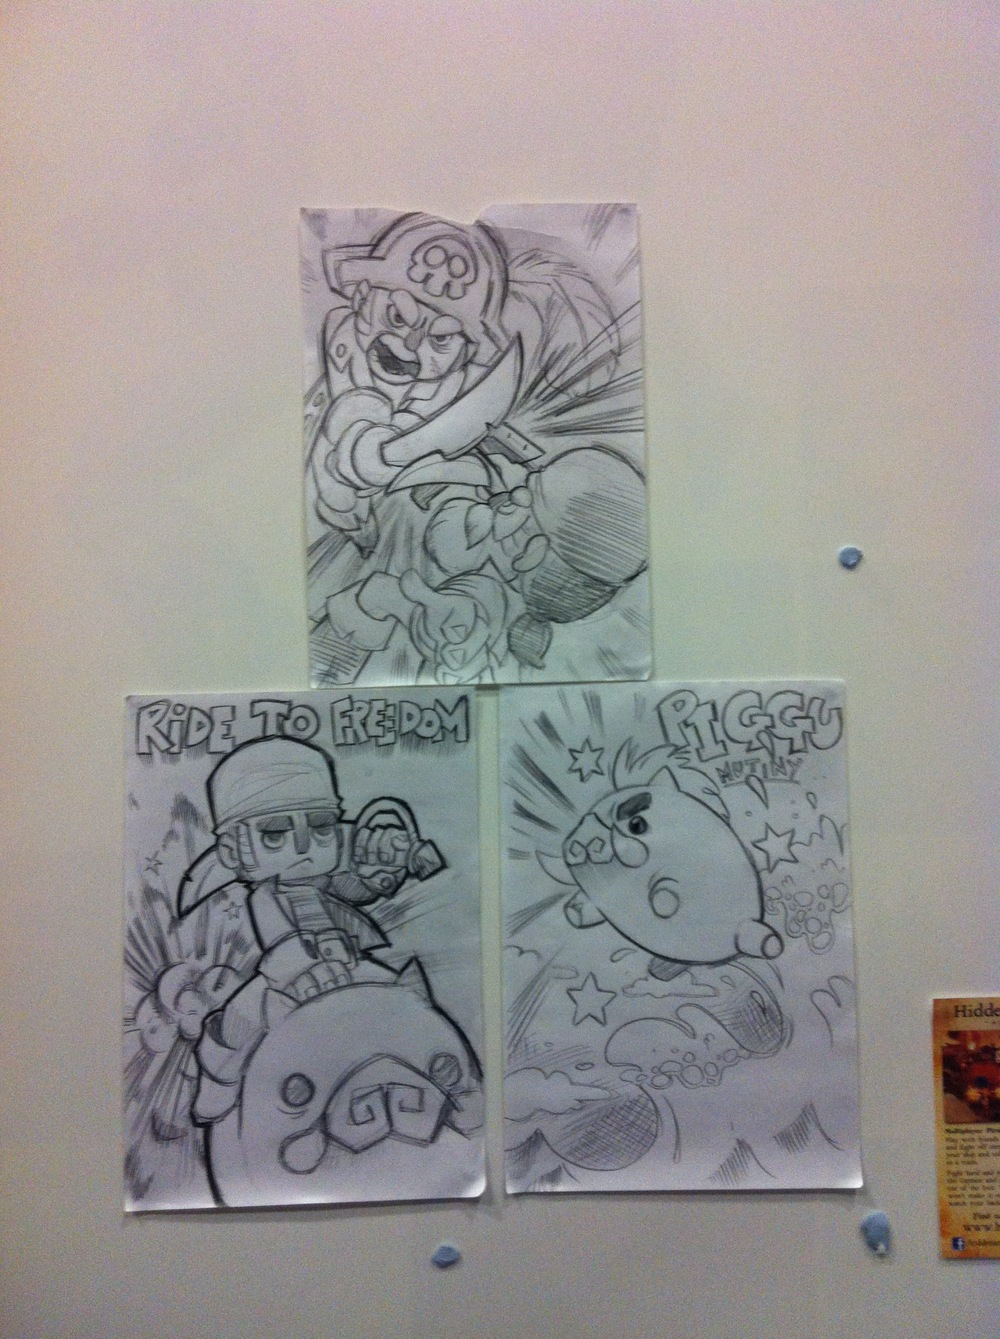 Artwork contributed by The Swift featuring pirates, mayhem and piggu.